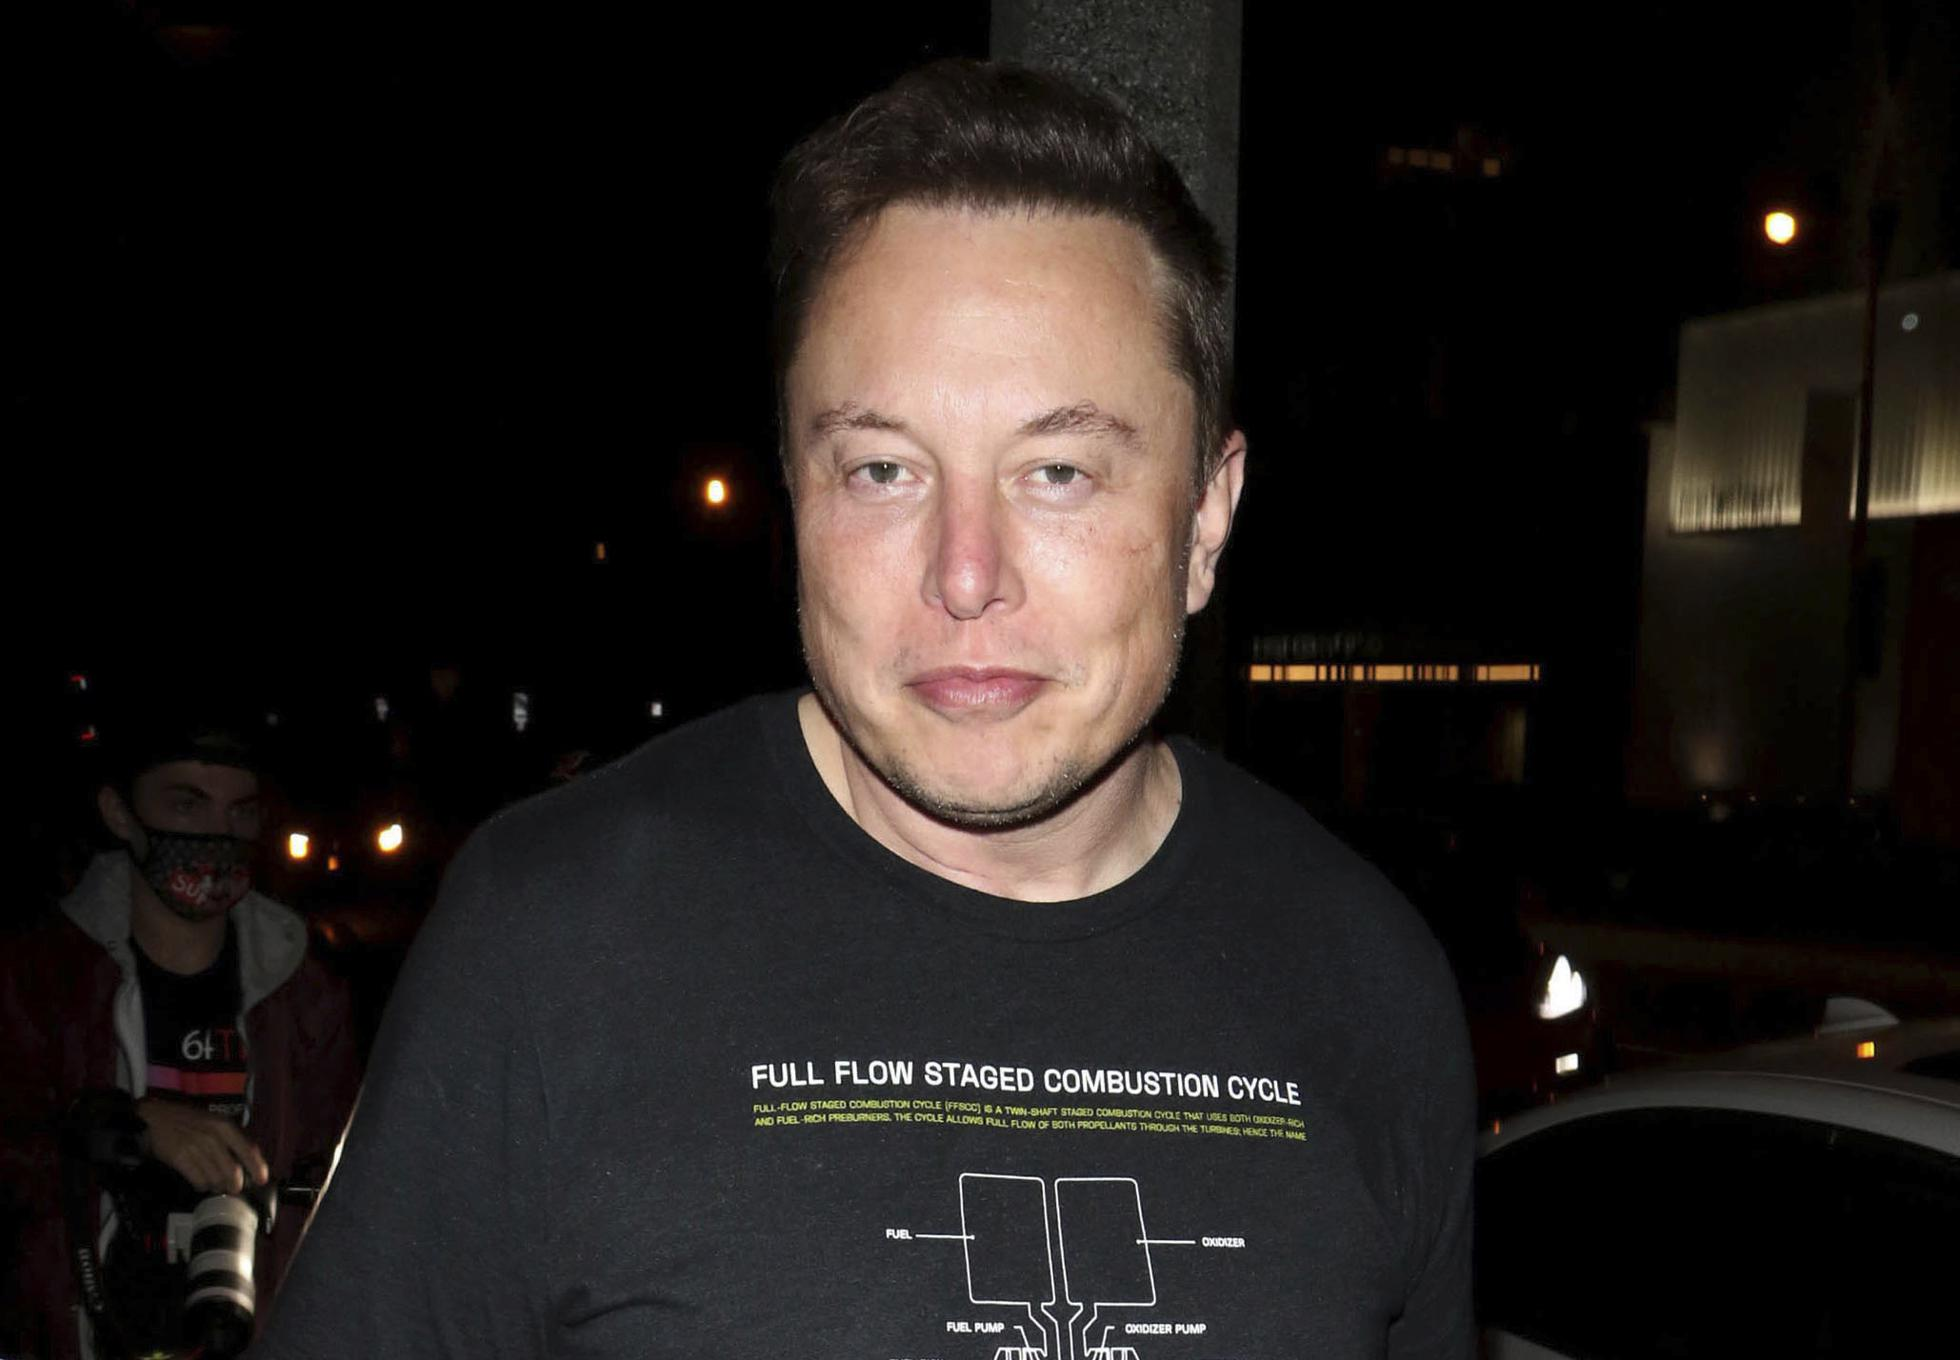 Bitcoin Tanks After Elon Musk Says Tesla Stops Accepting It Due To Carbon Energy Use